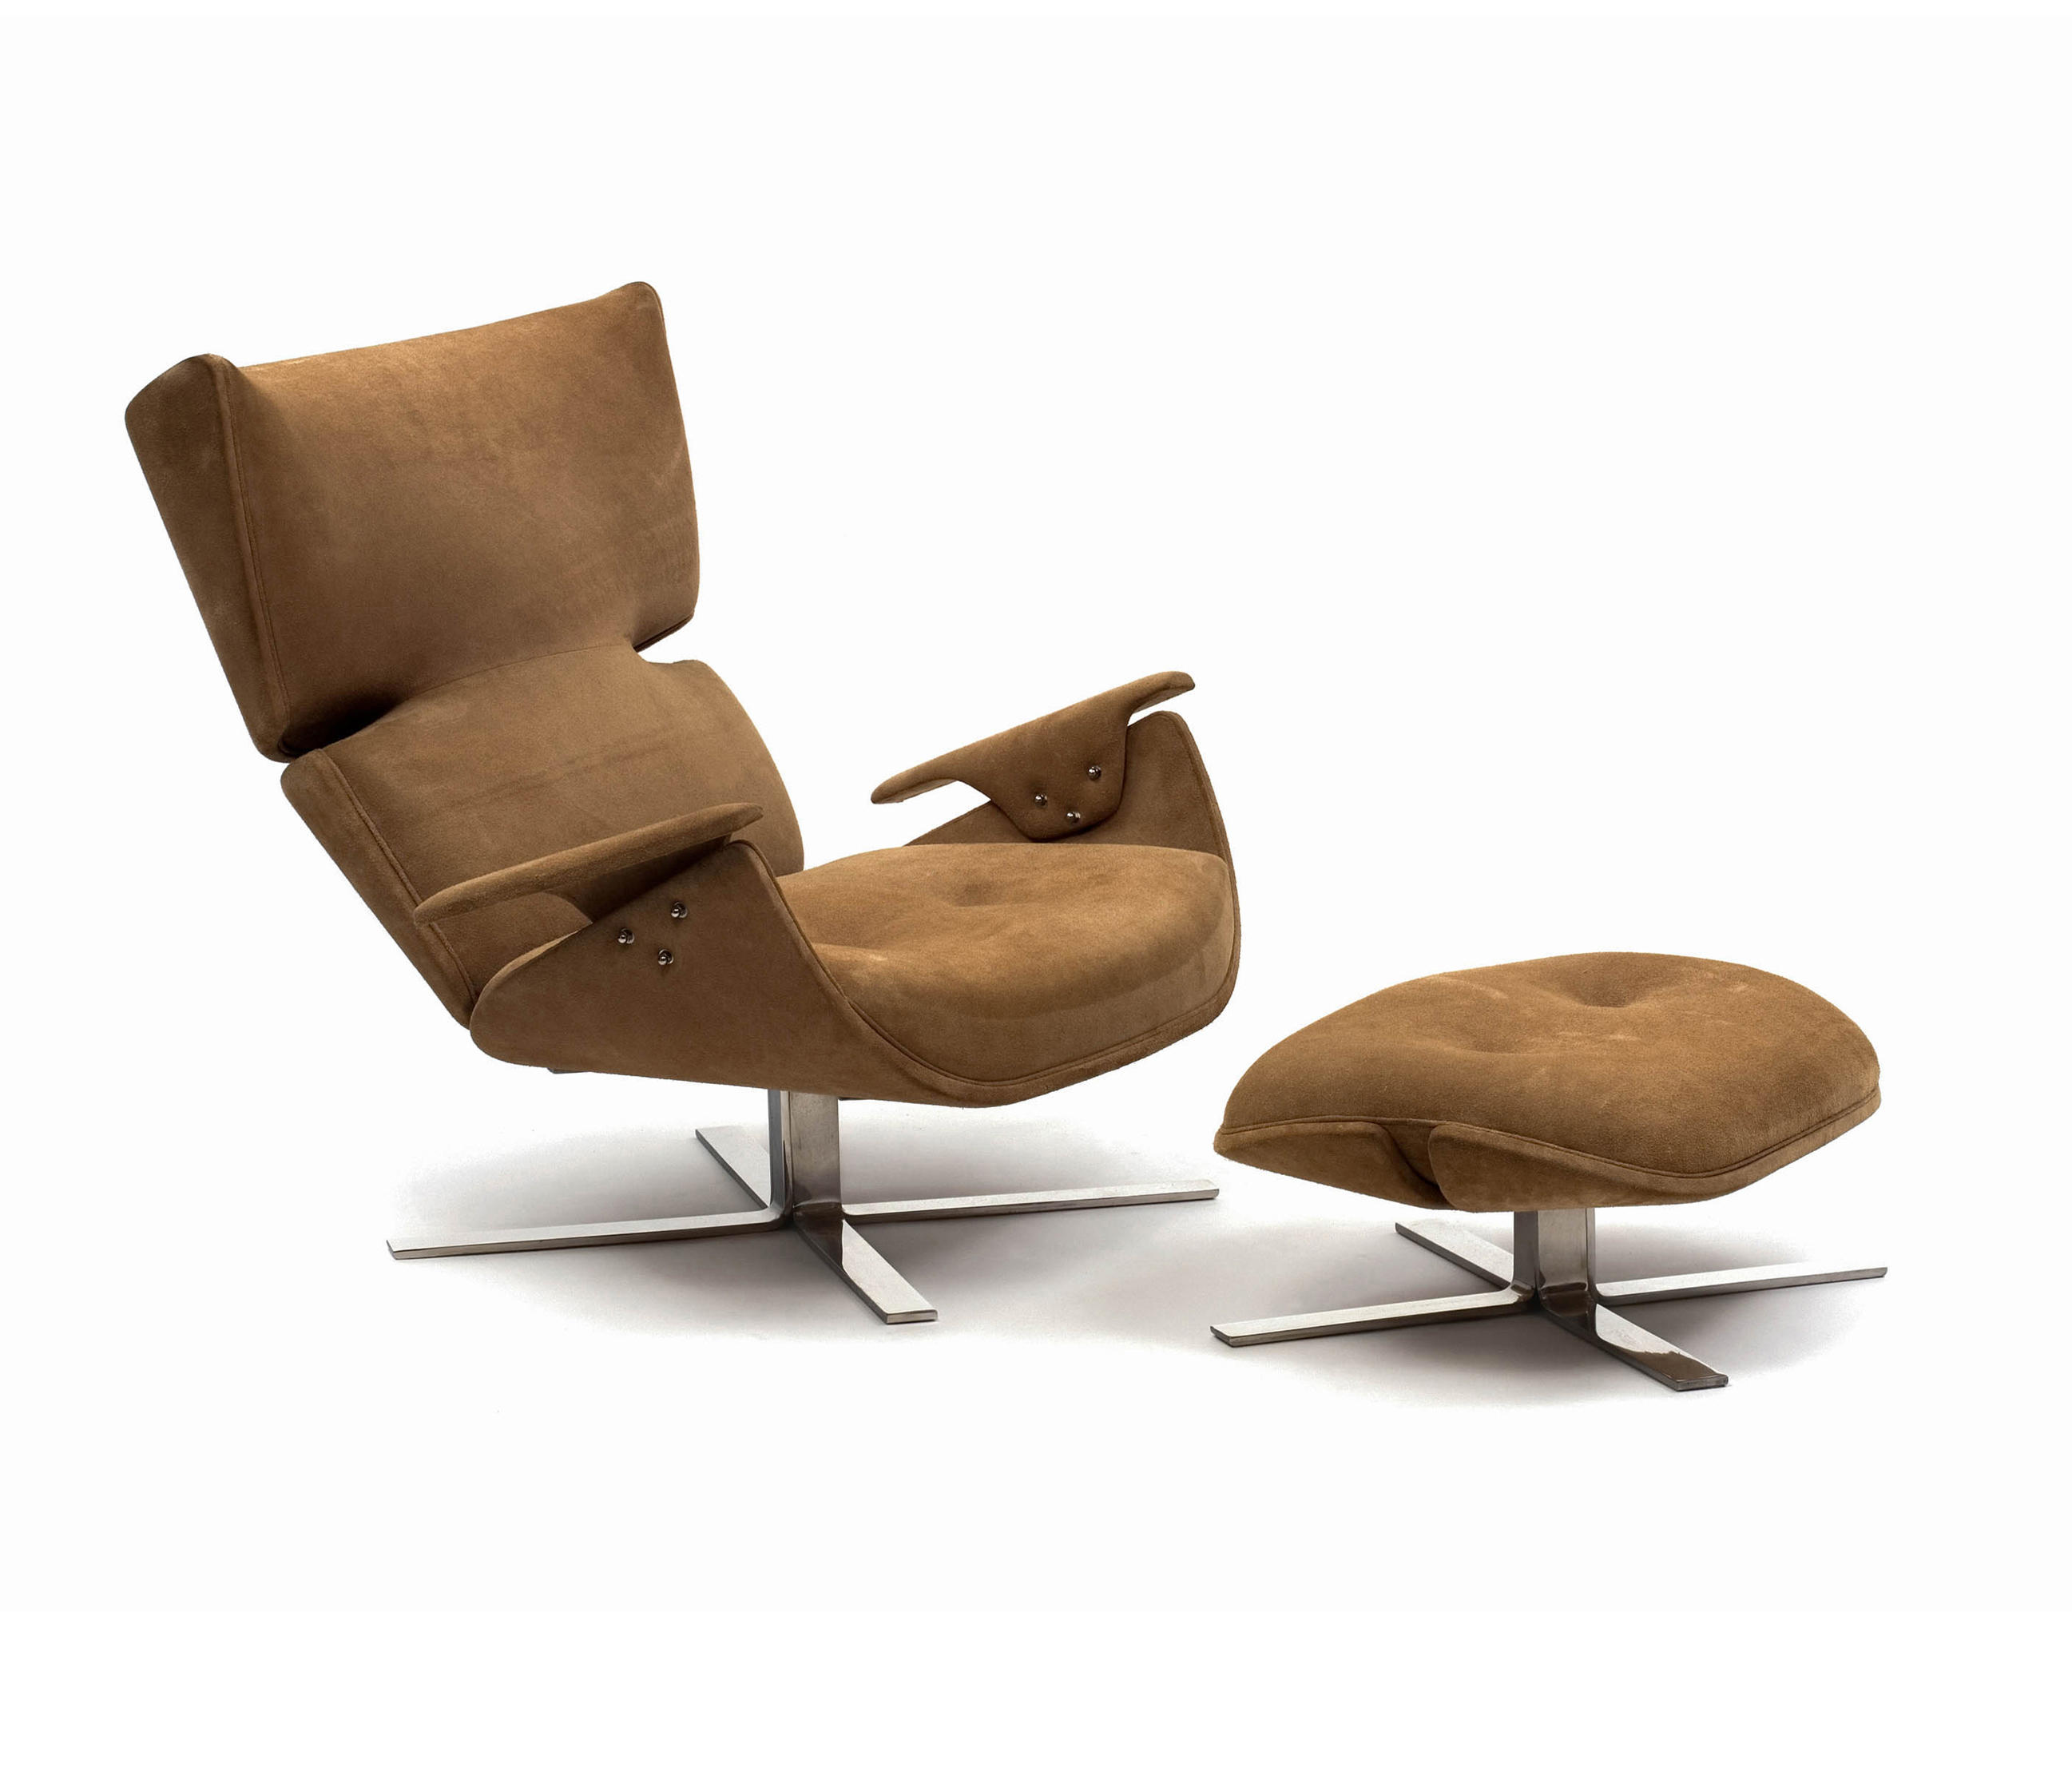 PAULISTANA LOUNGE CHAIR WITH OTTOMAN Lounge chairs from Espasso